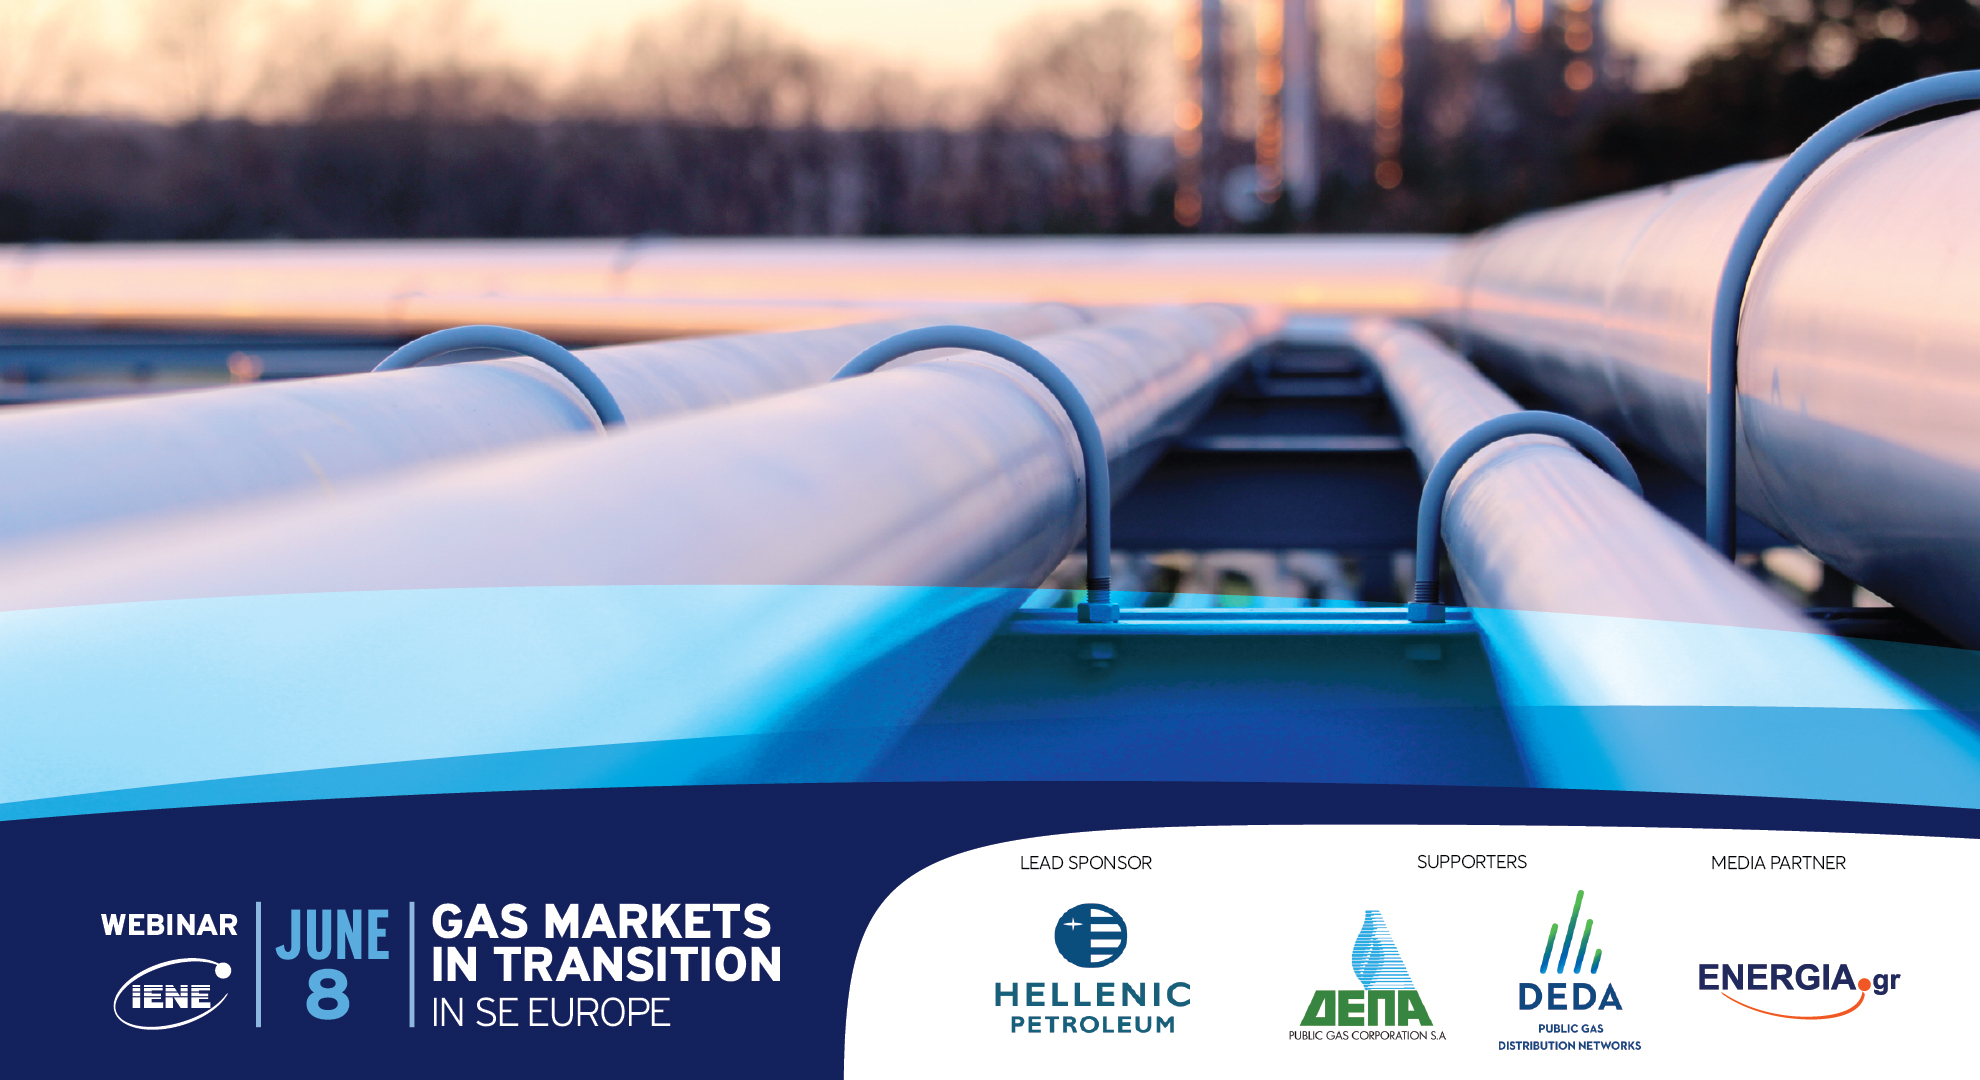 The challenges of the Natural Gas market in SΕ Europe were hotly debated at IENE's latest webinar